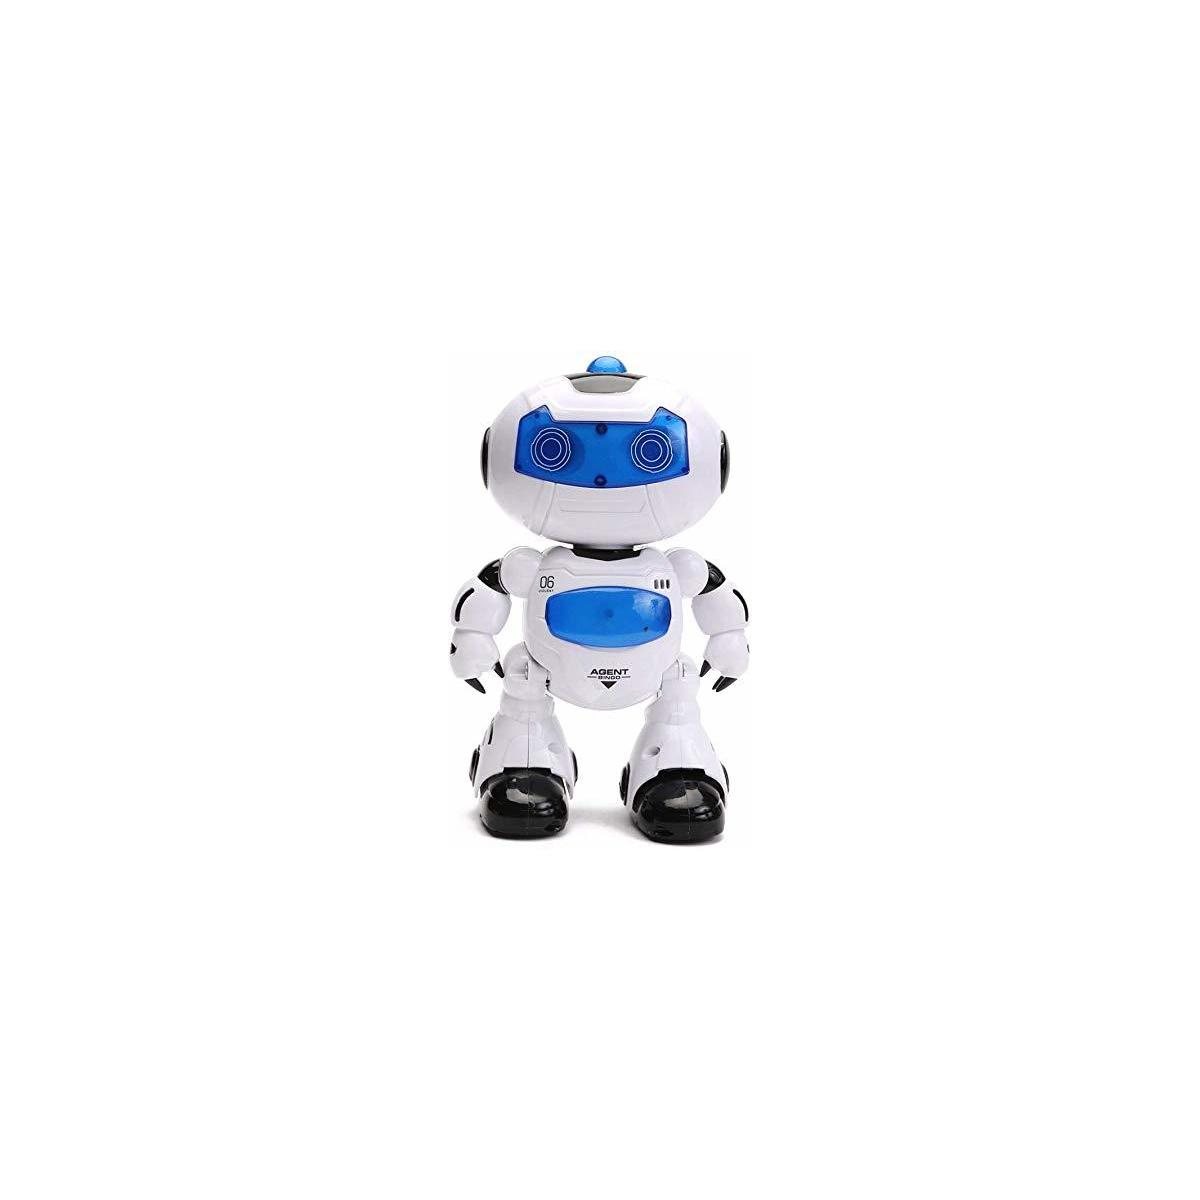 HANMUN RC Robot for Kids - Electronic Learning Toys Toddler Dancing Singing Remote Control Robot Led Eyes with Music Lights